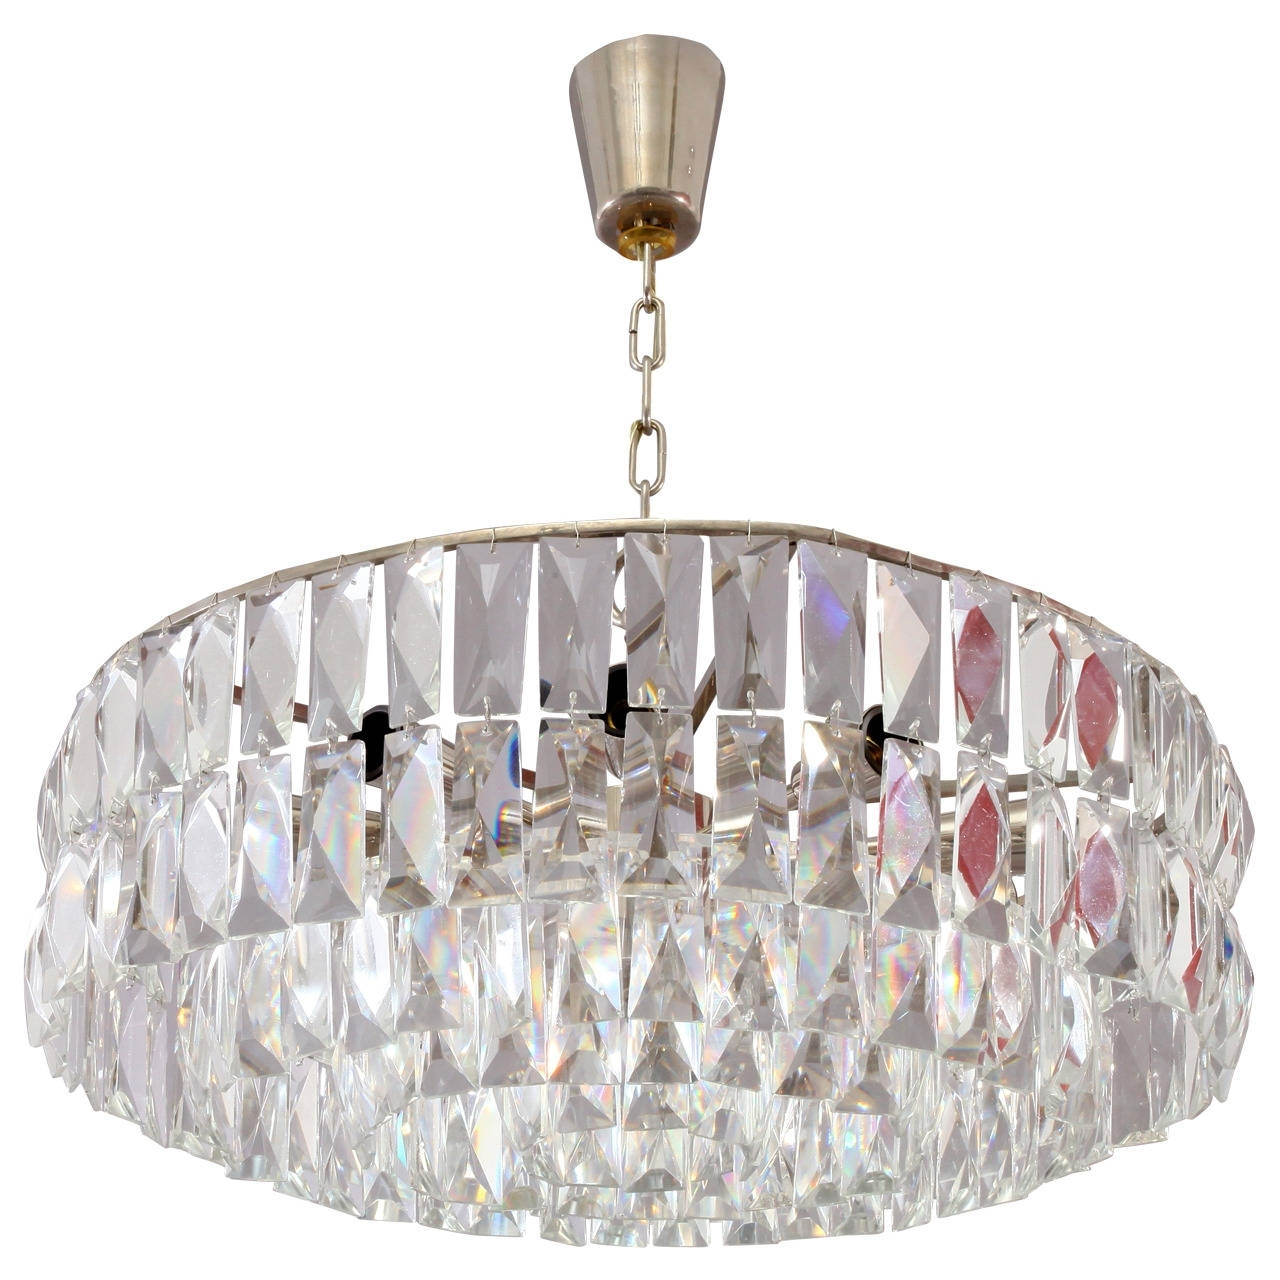 Widely Used Stunning Chandelier With Large Crystalsbakalowits And Sohne Pertaining To Vienna Crystal Chandeliers (View 9 of 15)